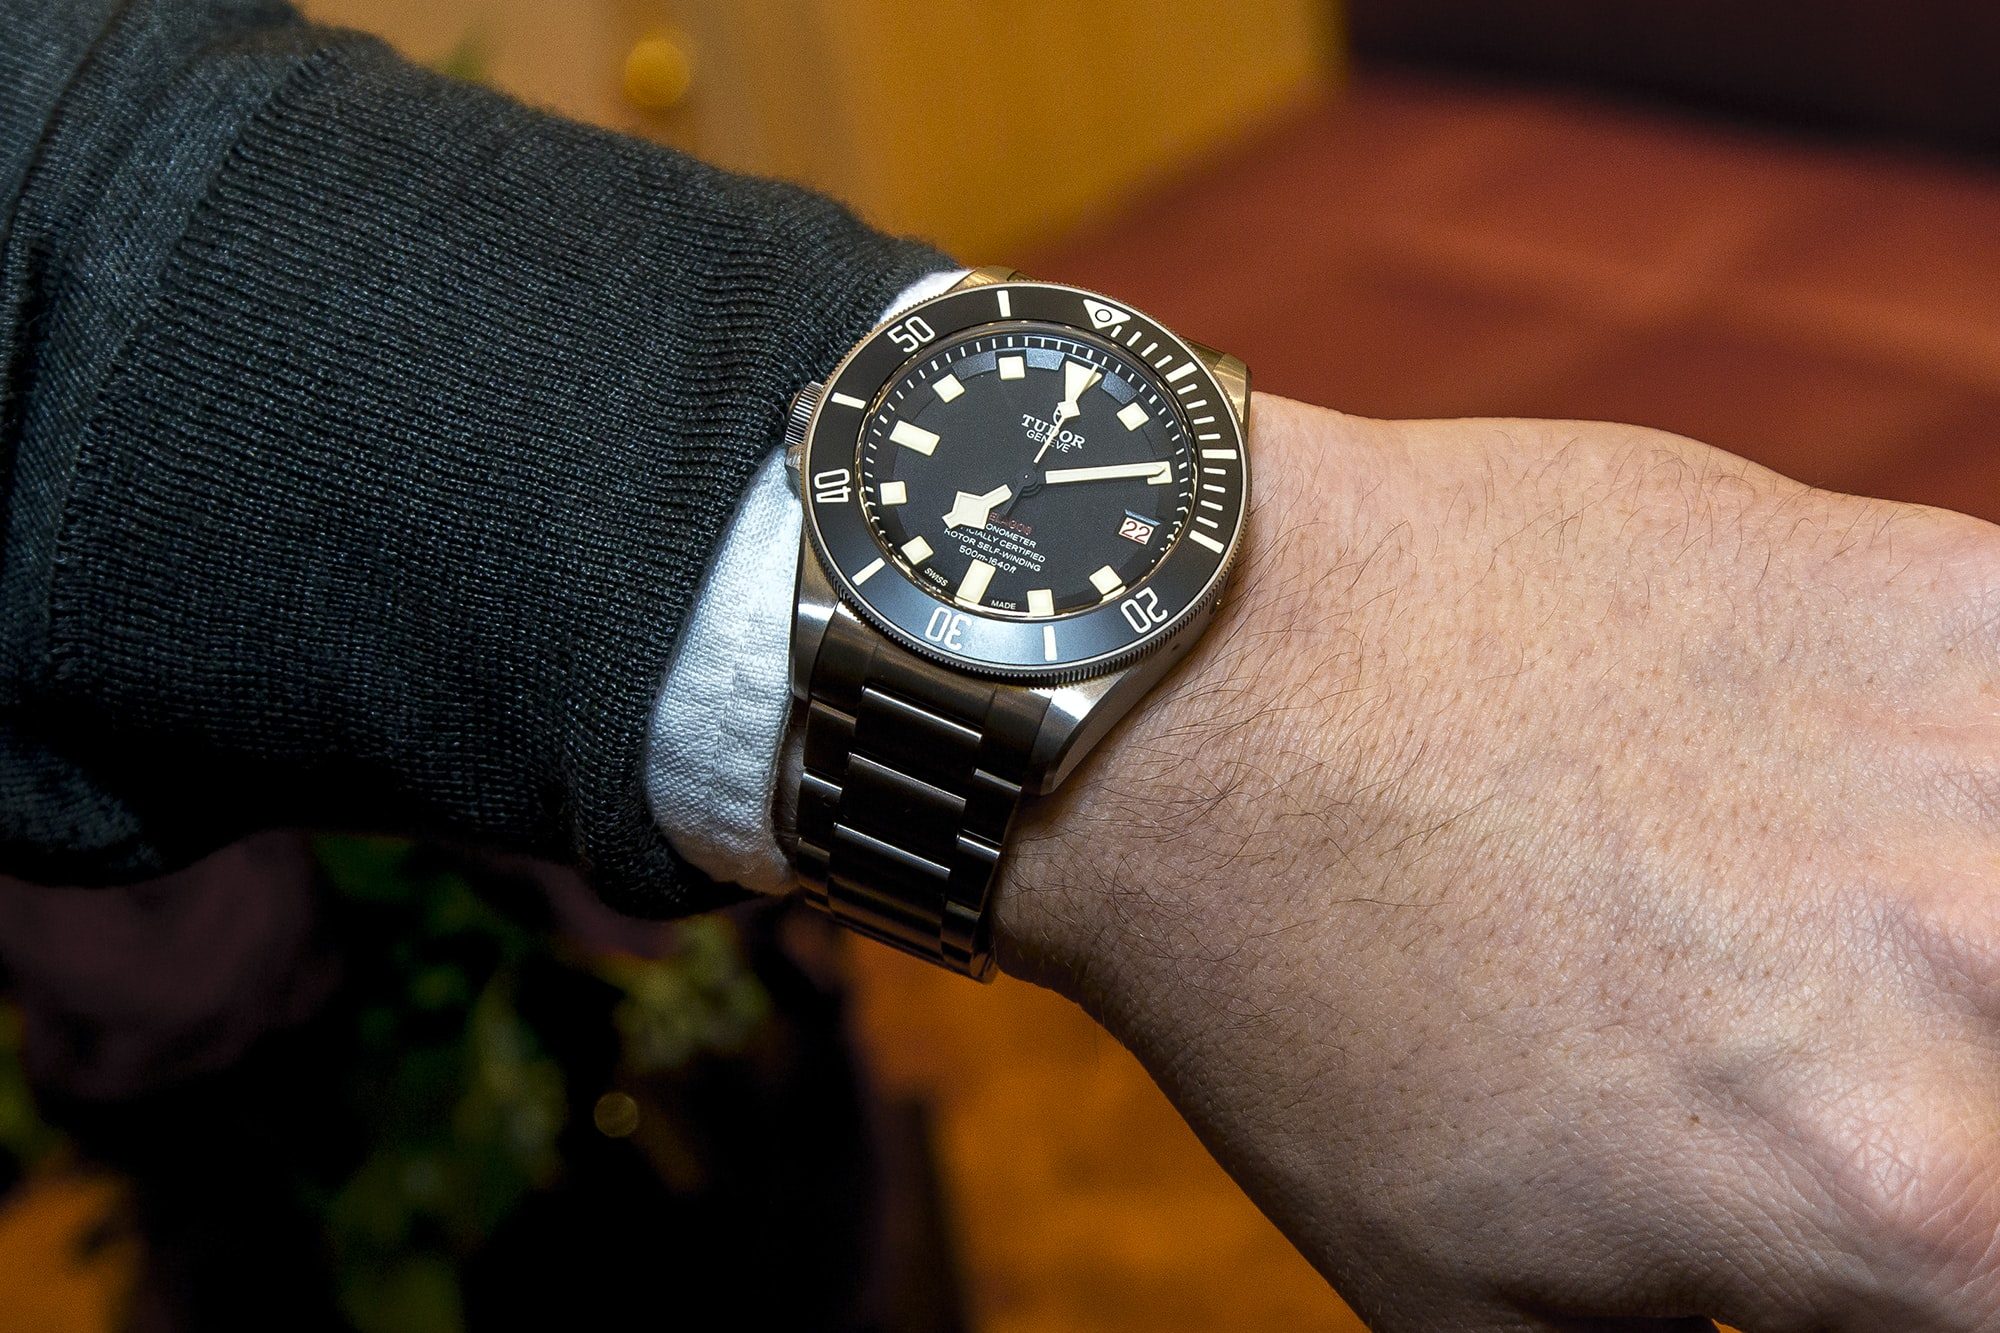 Photo Report: HODINKEE Hosts A Collector Get-Together At The Wempe Boutique In London Photo Report: HODINKEE Hosts A Collector Get-Together At The Wempe Boutique In London 3333